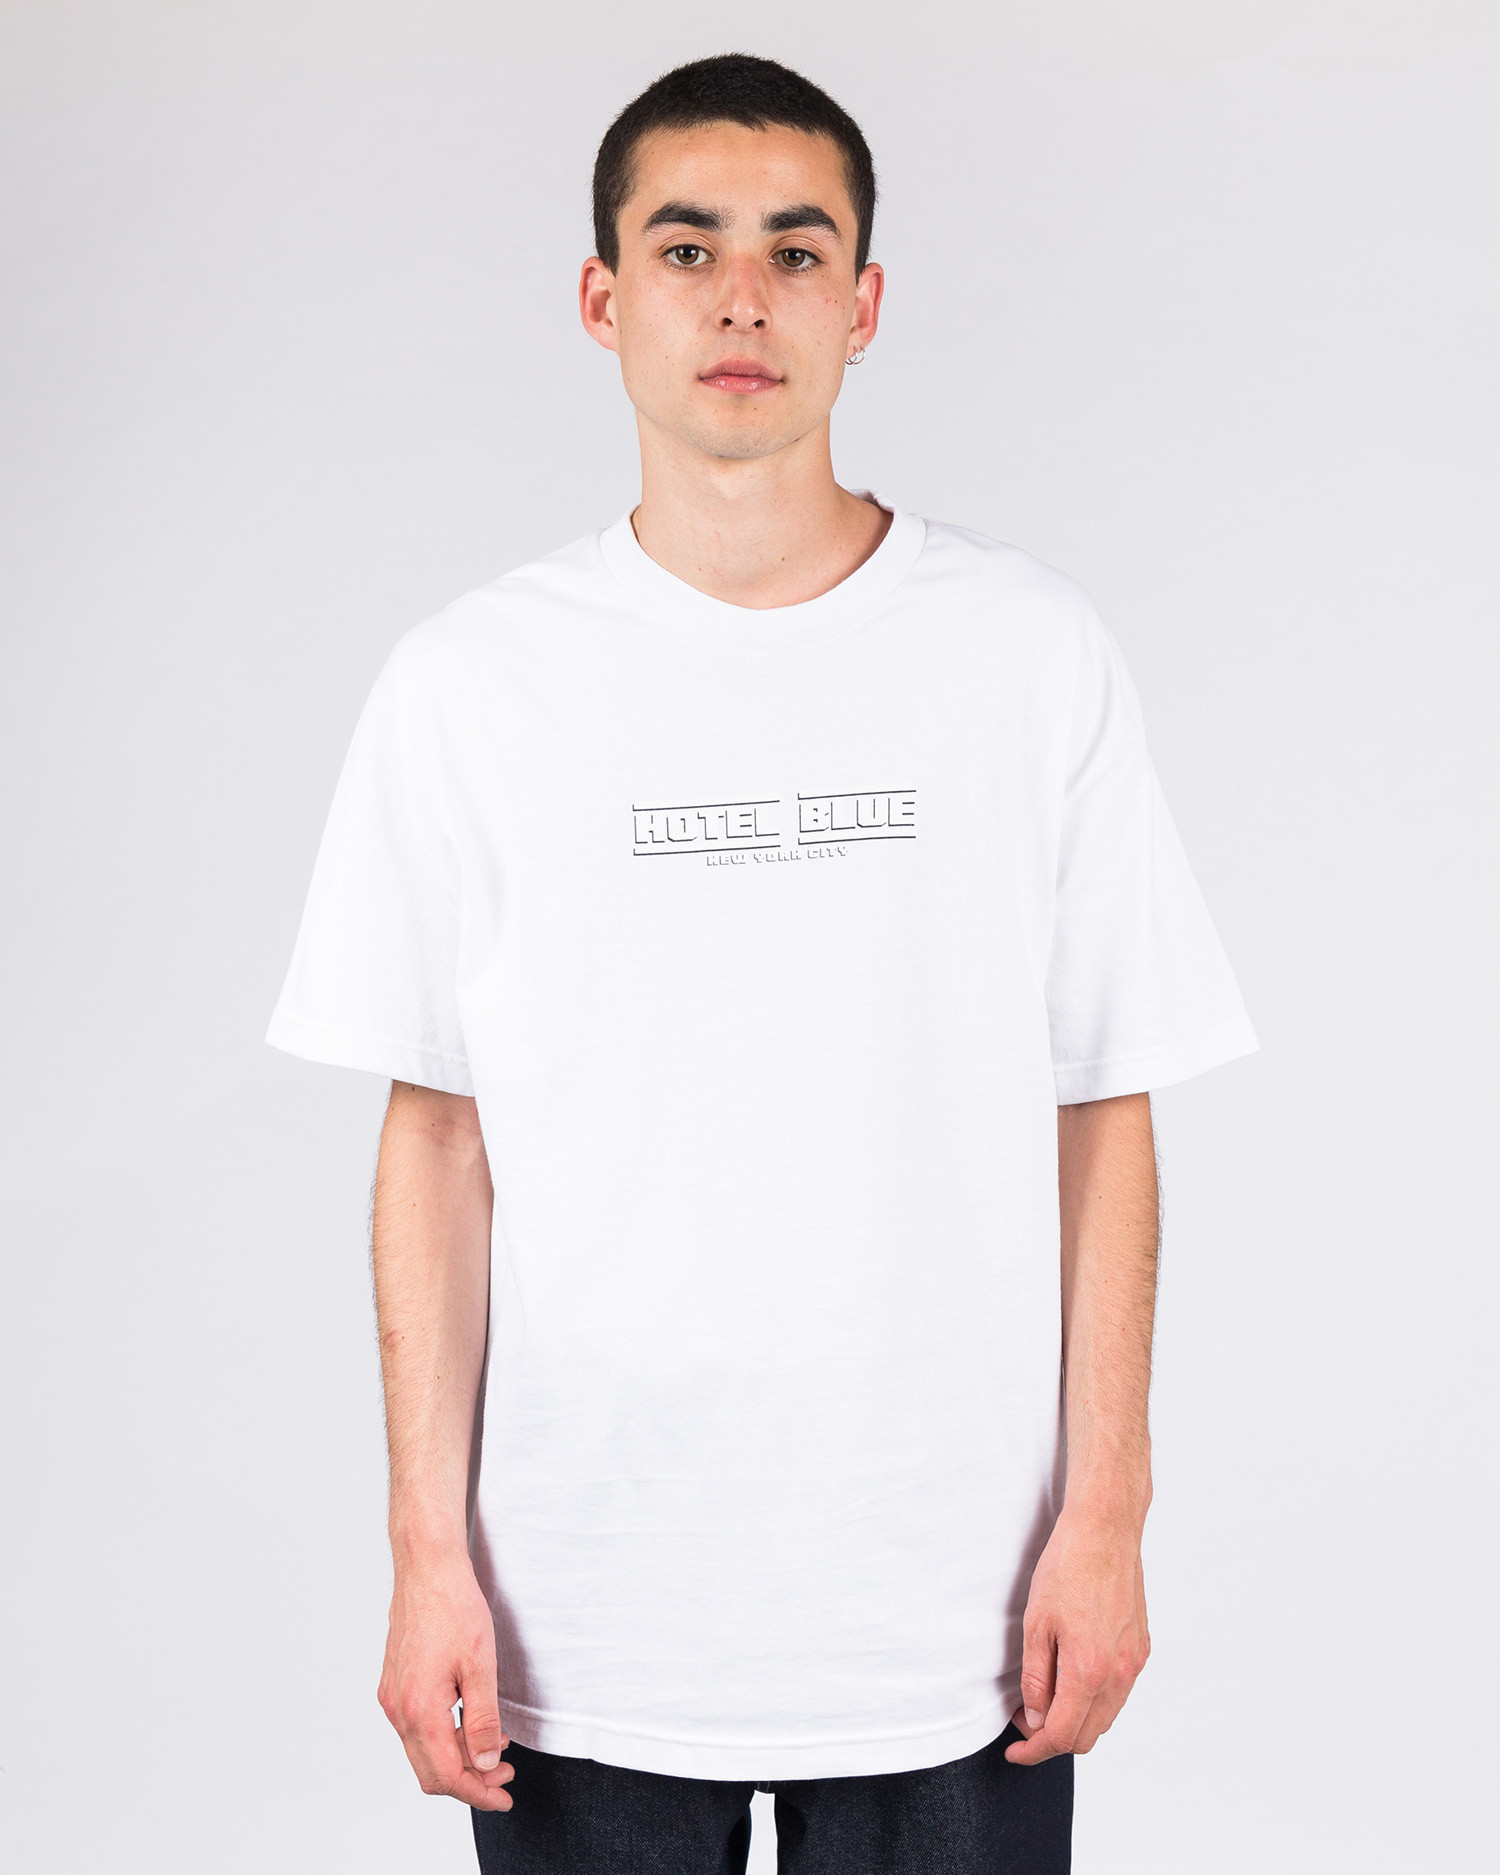 Hotel Blue Speed Racer T-Shirt White